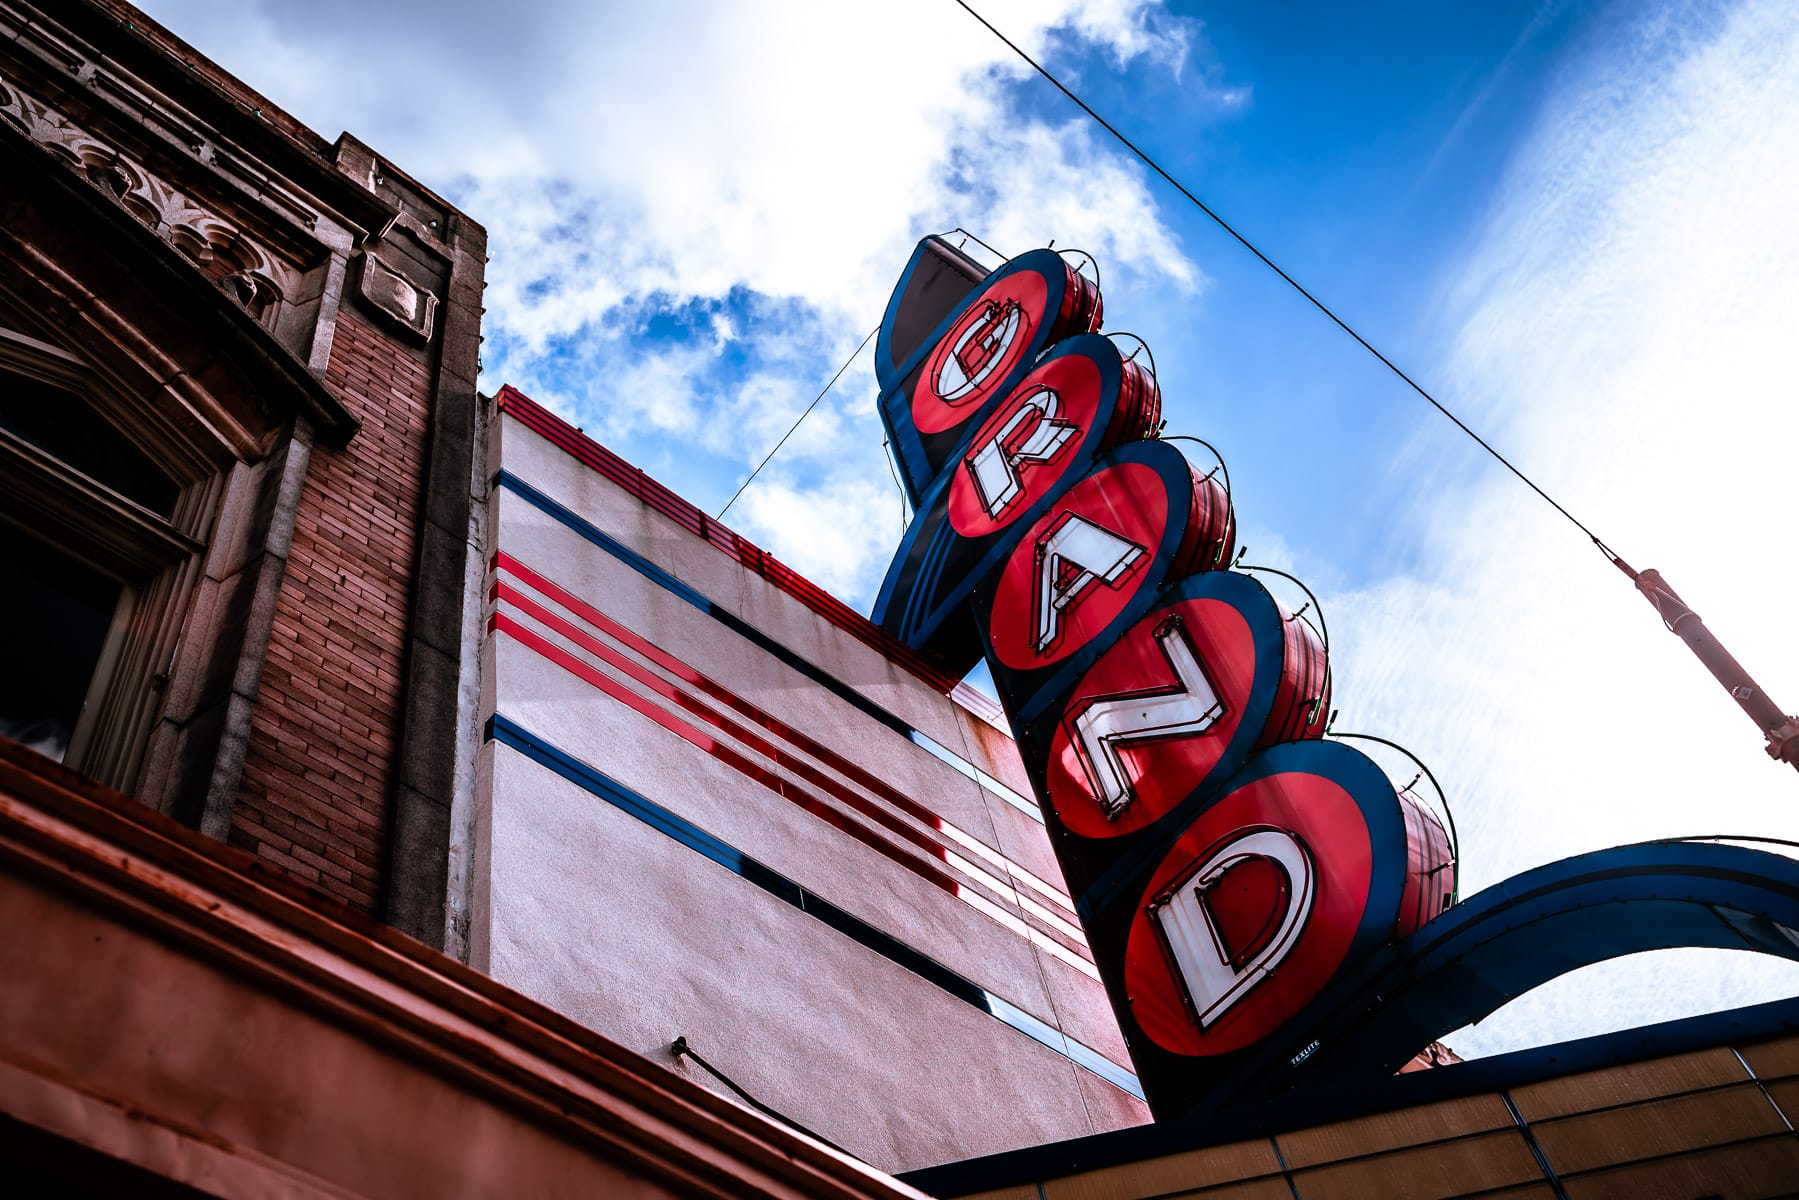 The sign of the 1937 Grand Theatre in Downtown Paris, Texas.